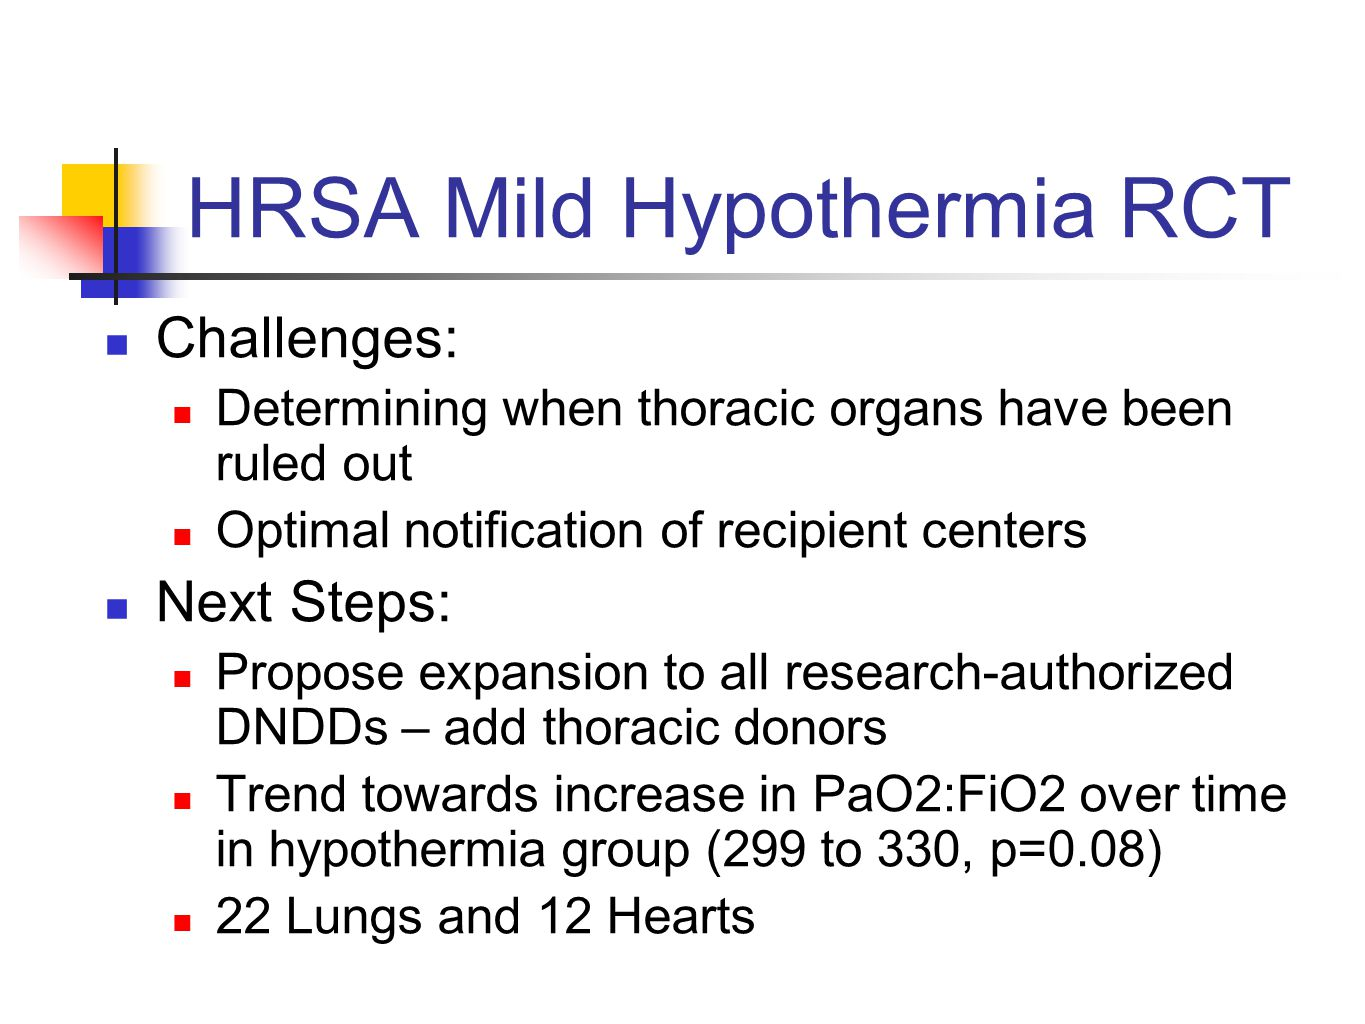 HRSA Mild Hypothermia RCT Challenges: Determining when thoracic organs have been ruled out Optimal notification of recipient centers Next Steps: Propo